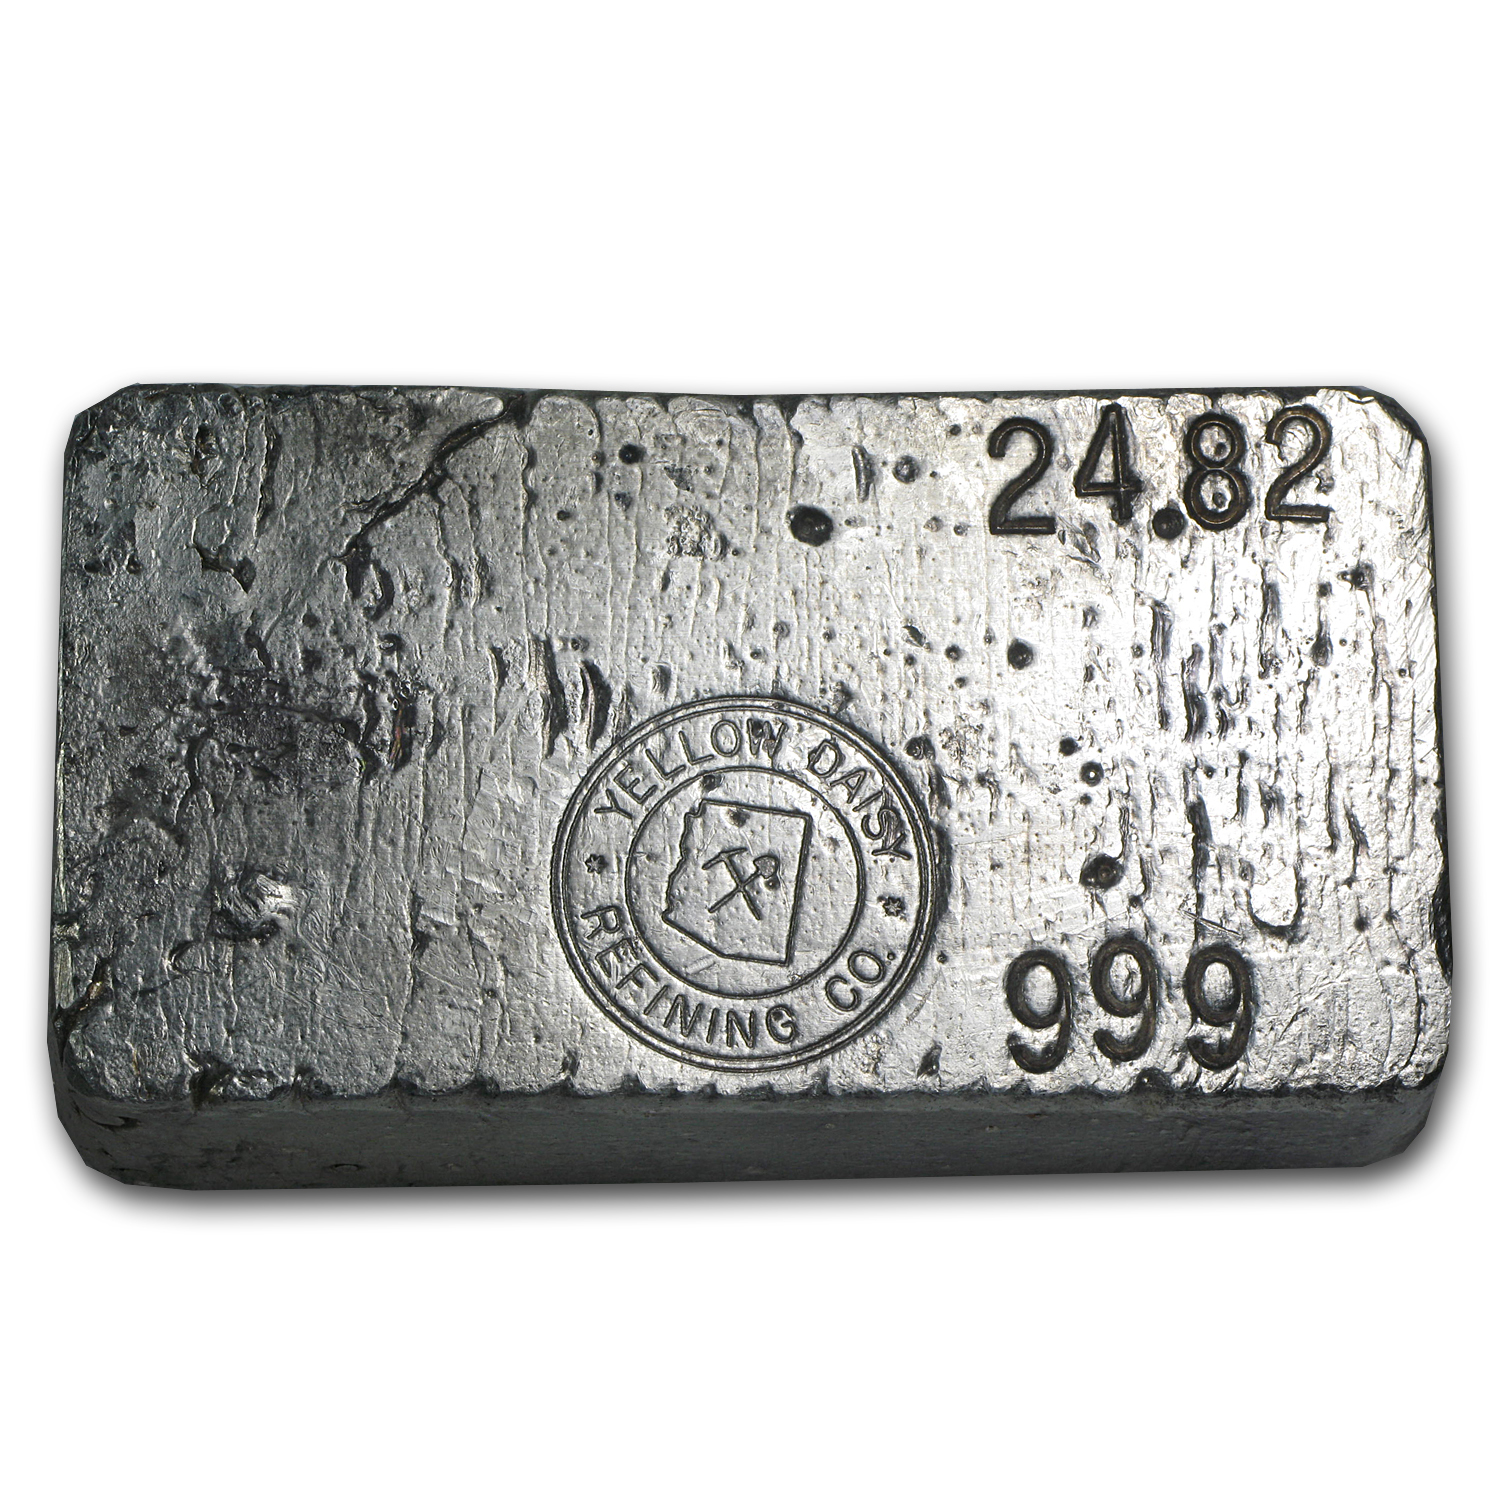 24.82 oz Silver Bar - Yellow Daisy Refining Co.